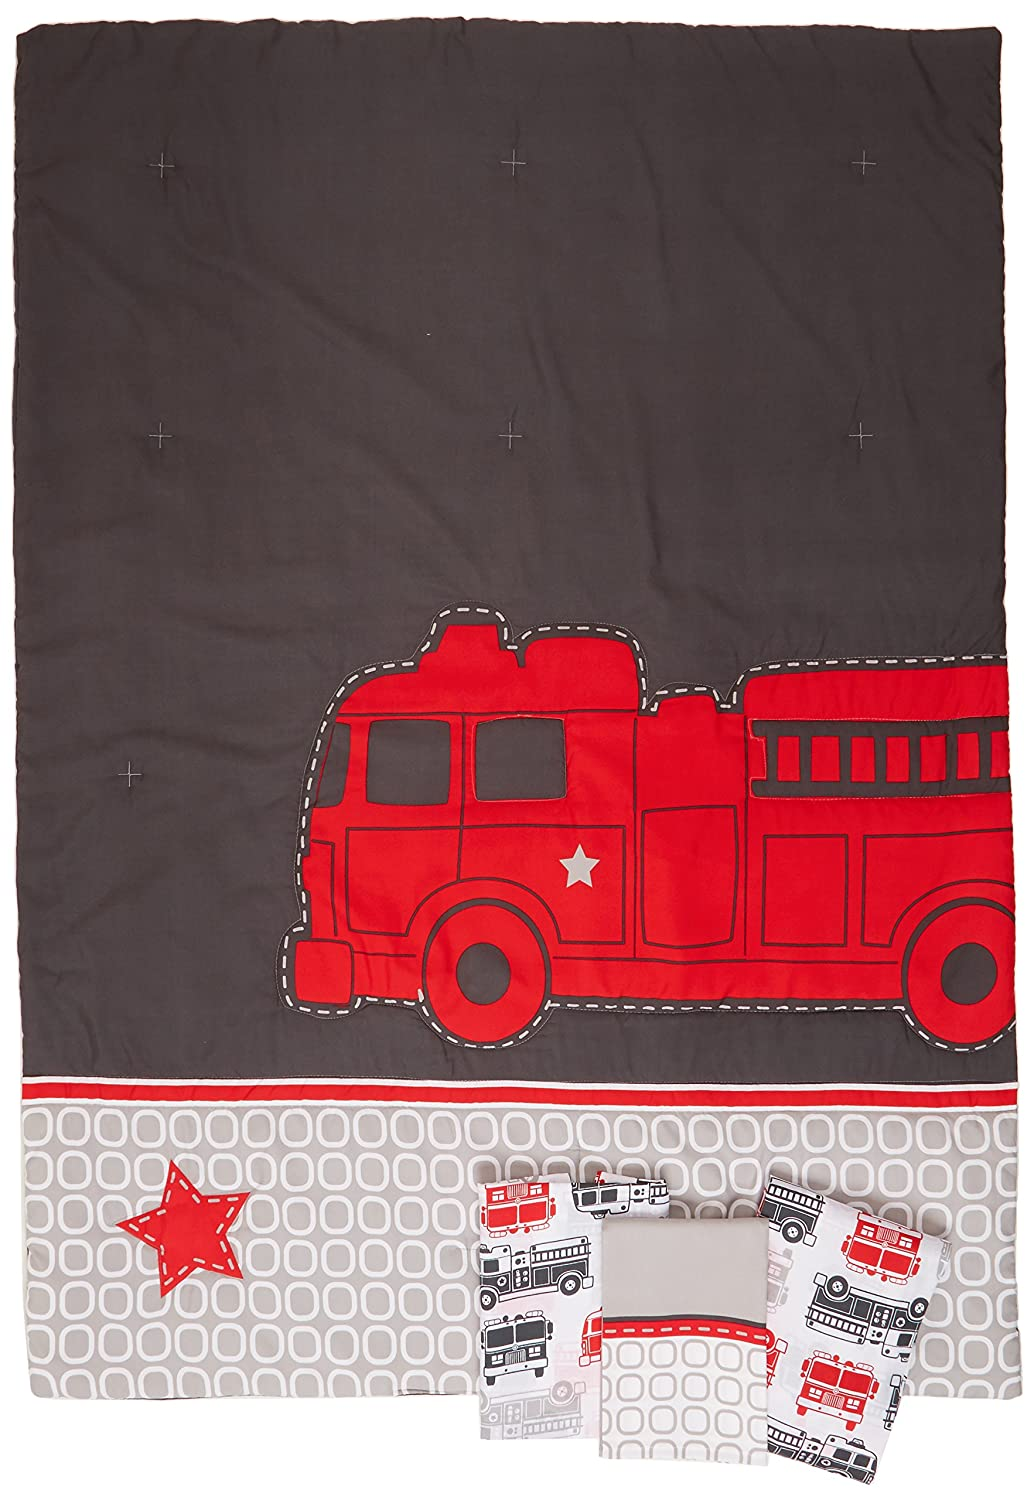 Carter's 4 Piece Toddler Bed Set, Fire Truck Crown Crafts Infant Products 6353416